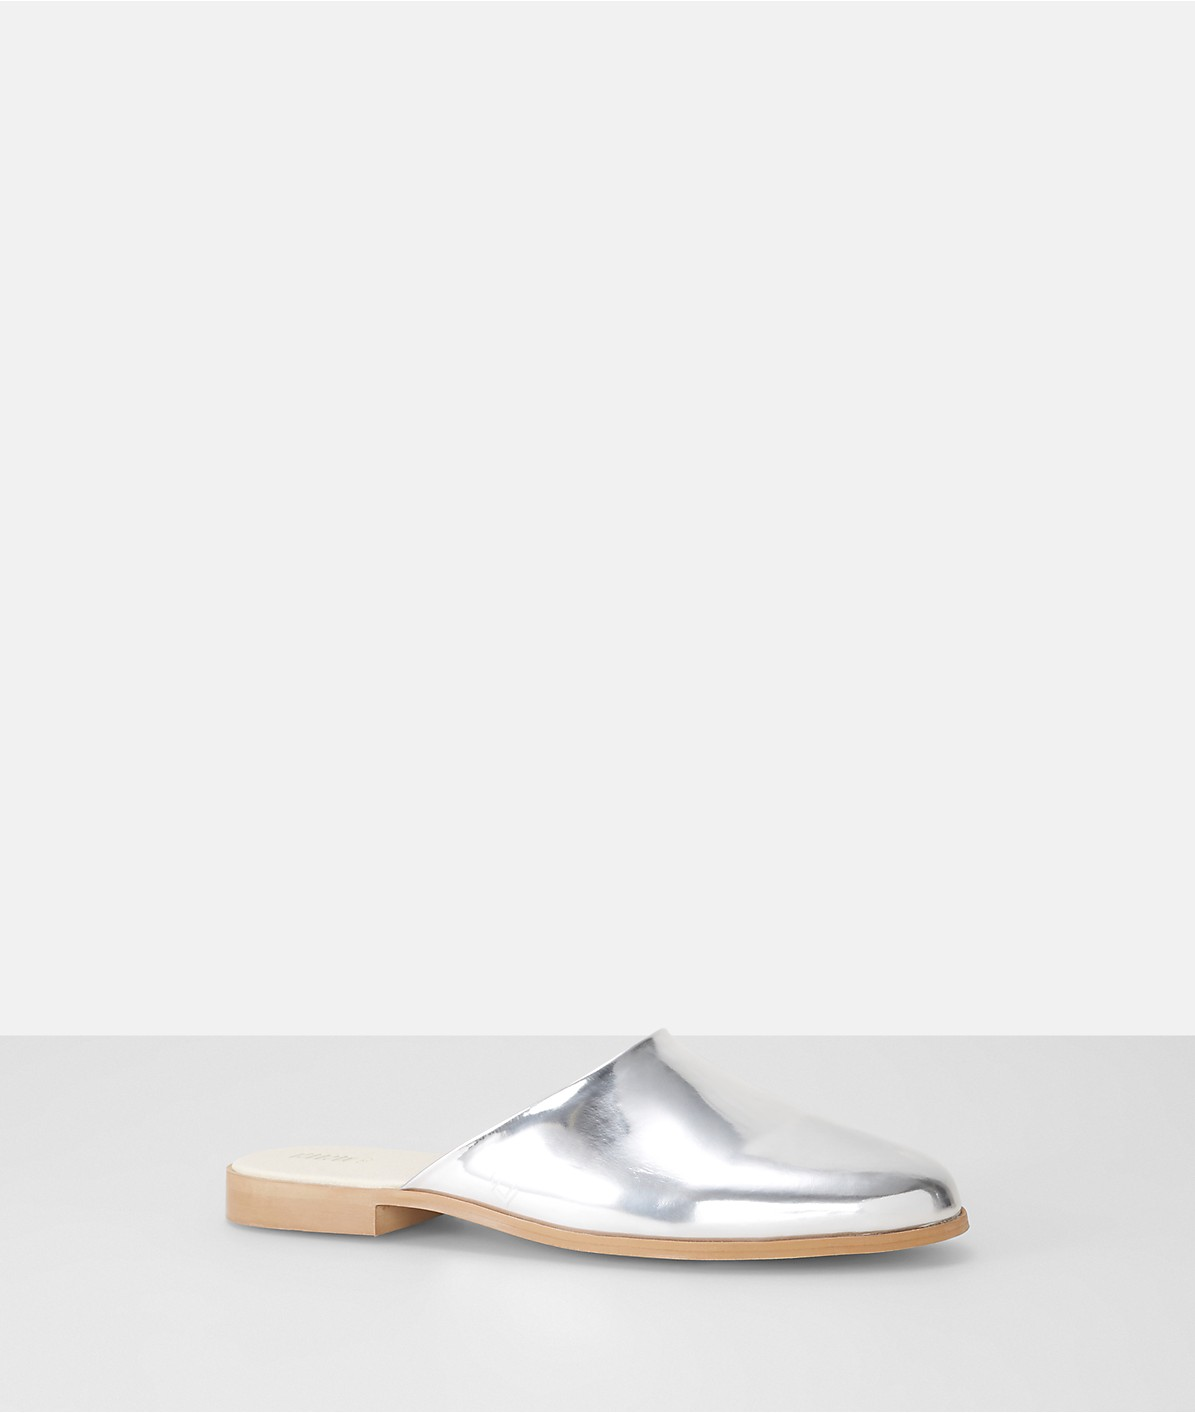 Pantolette in Metallic-Optik